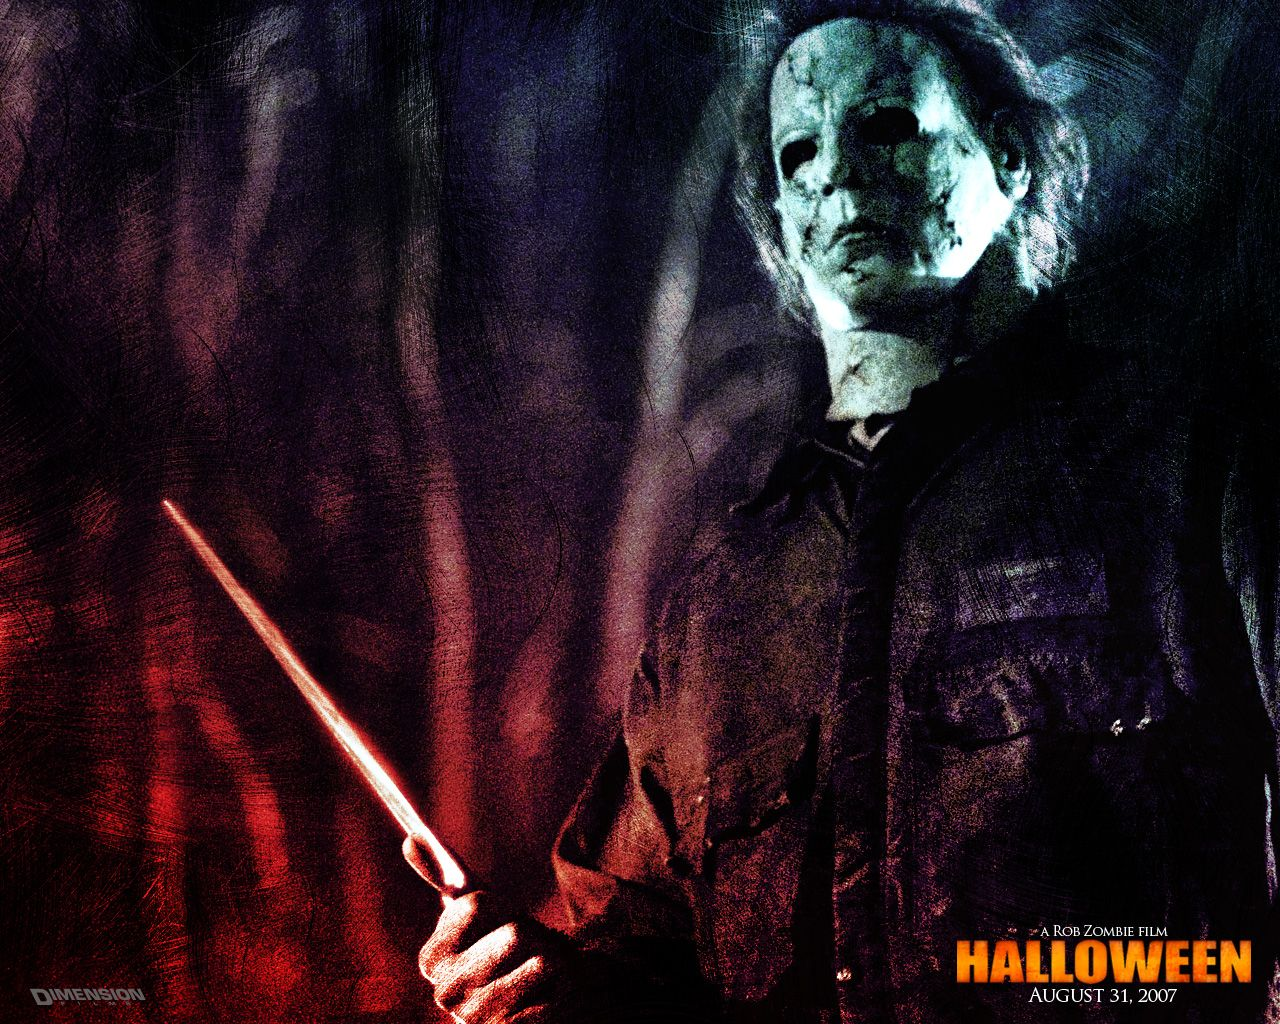 Evil Halloween Pictures | Scary Halloween Desktops | wallpaper, hd ...